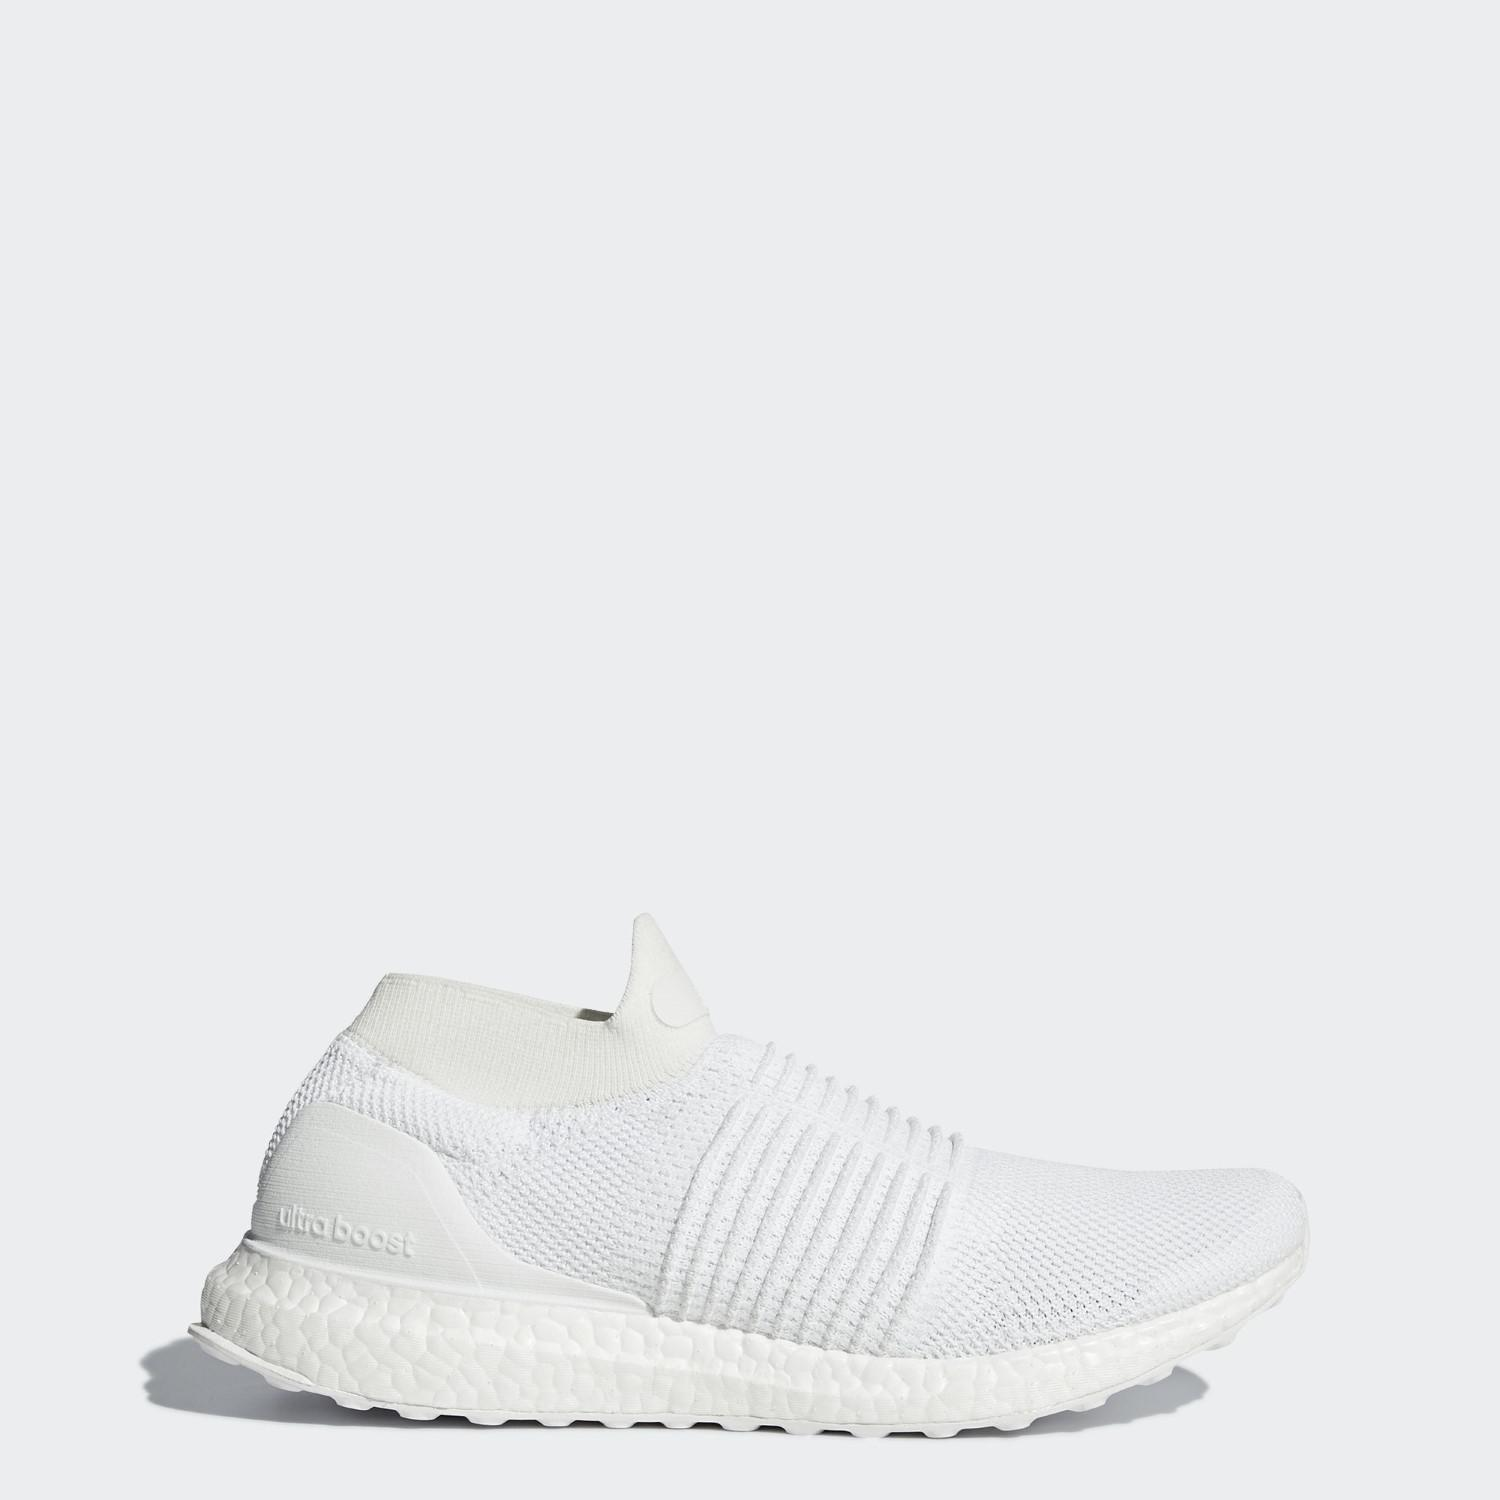 size 40 be25c 15d0d Lyst - adidas Ultraboost Laceless Shoe in White for Men